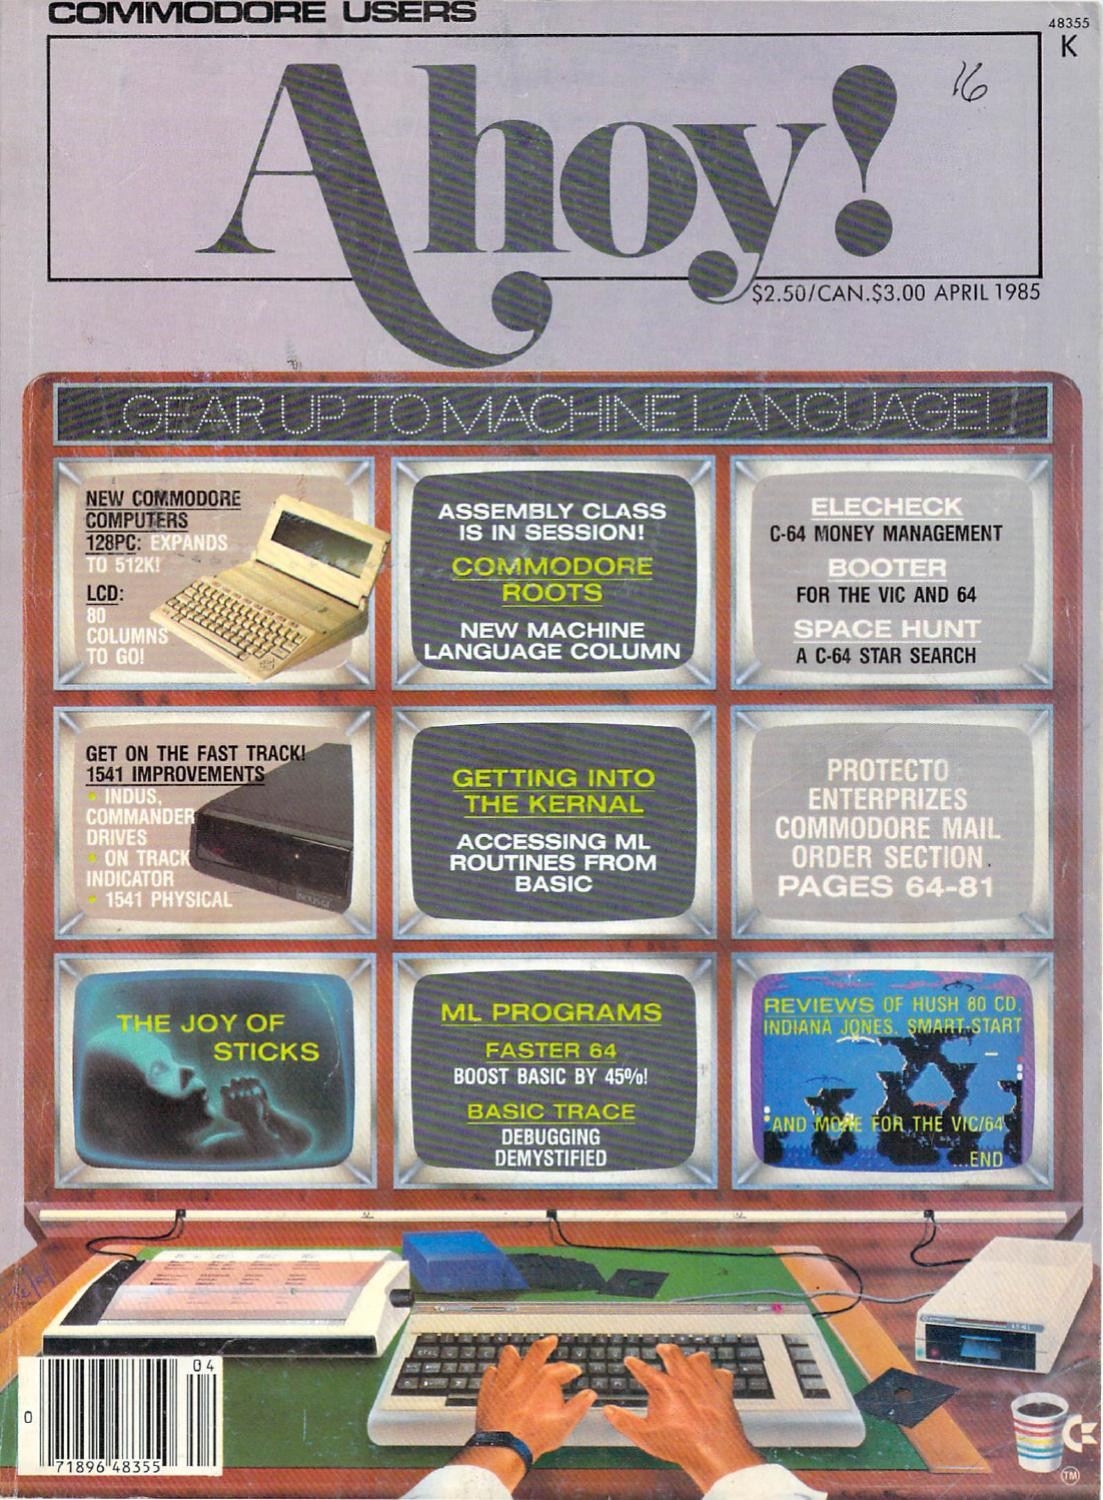 Banc Fer forgé Leroy Merlin Inspirant Ahoy issue 16 1985 Apr by Zetmoon issuu Of 37 Élégant Banc Fer forgé Leroy Merlin